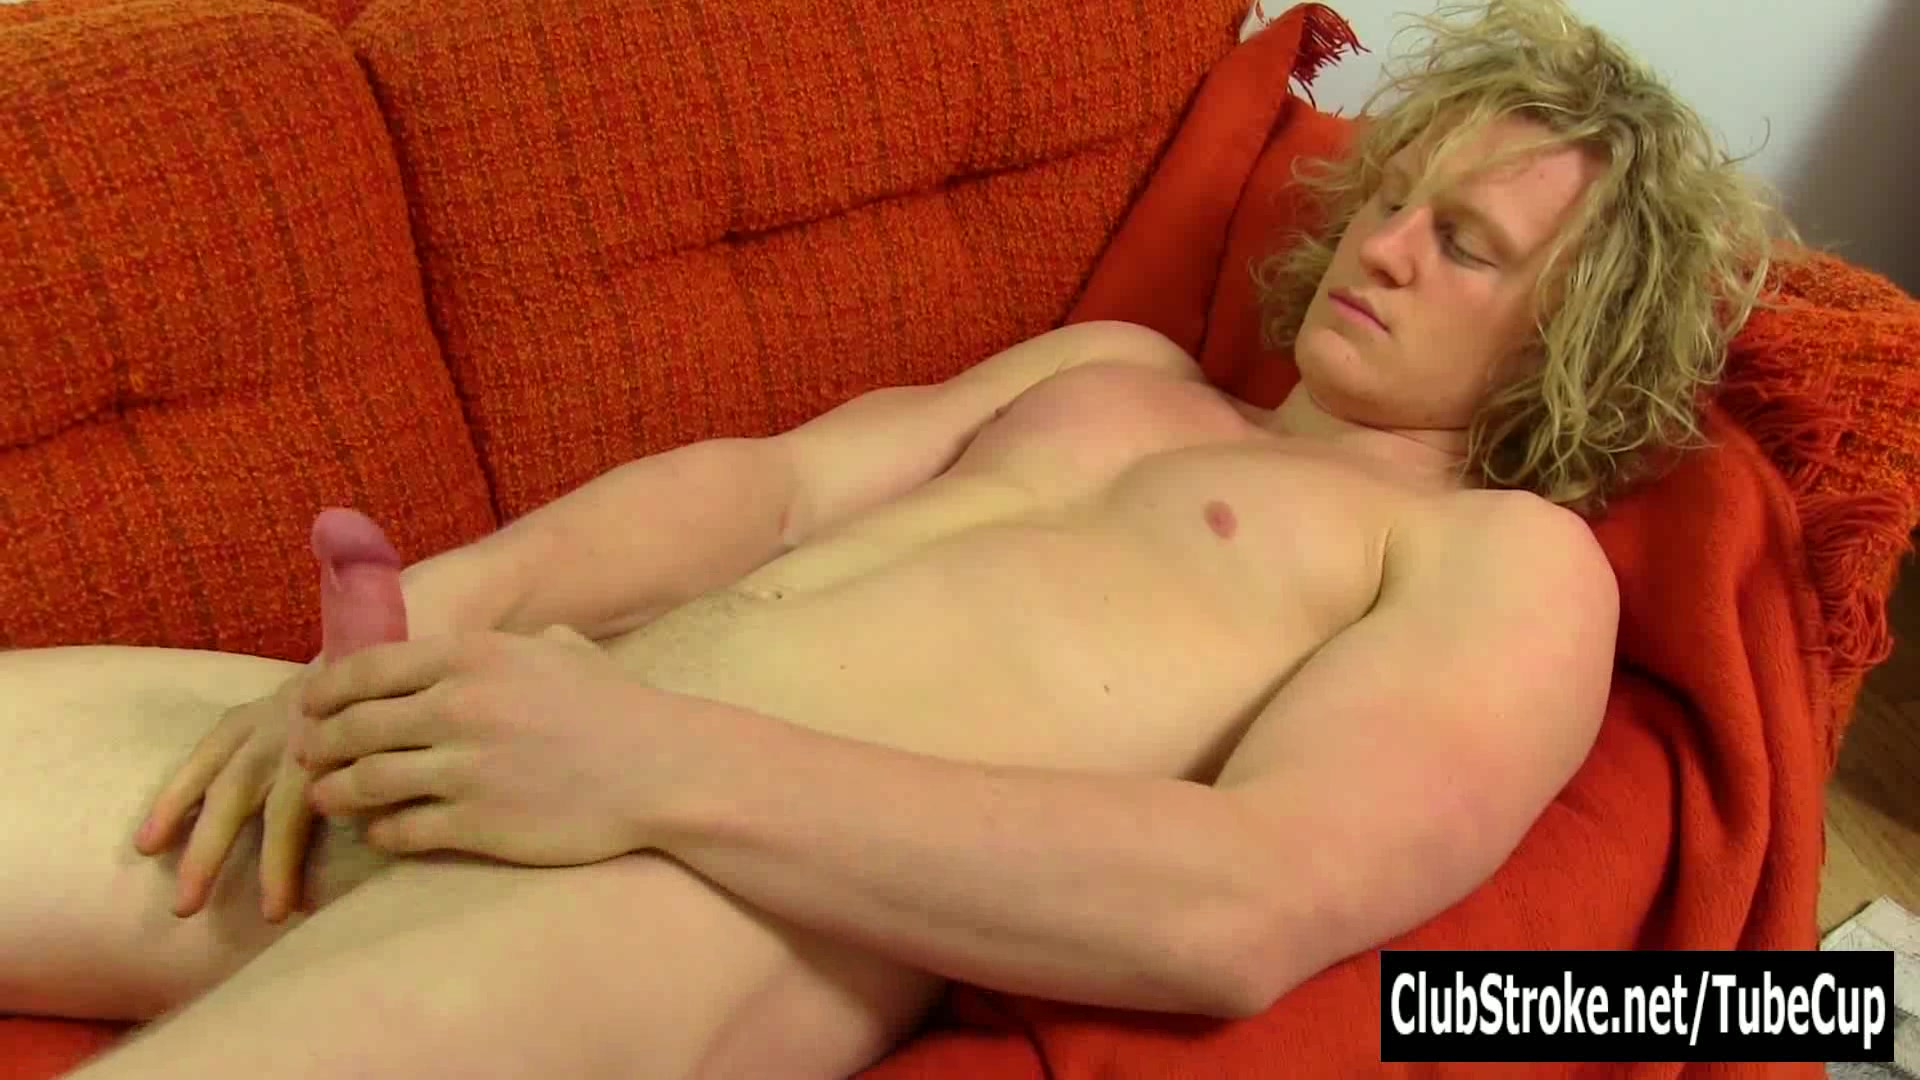 Blonde Straight Shane Masturbating Sexy old women videos